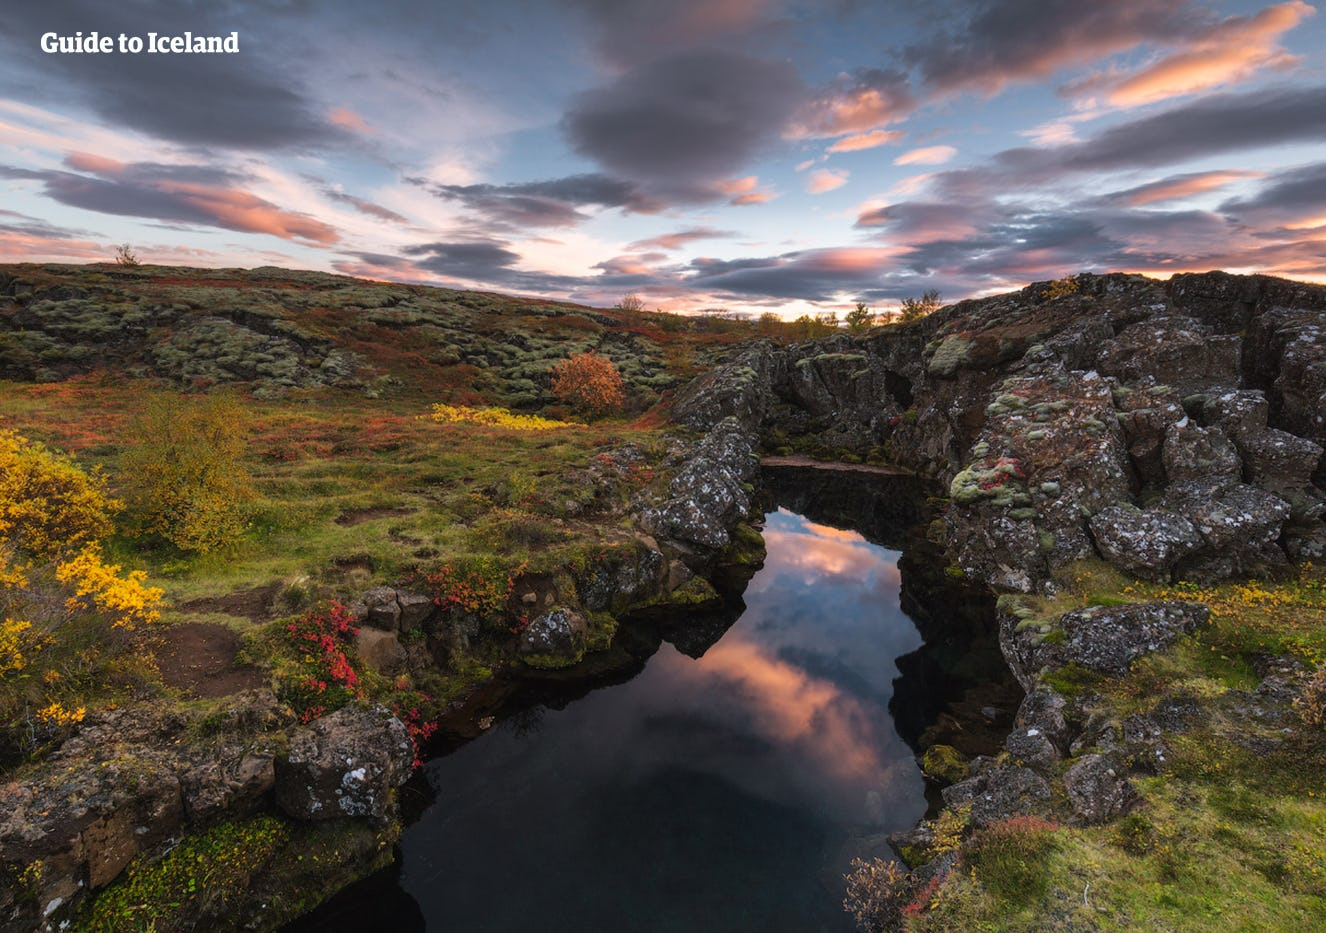 Silfra fissure in Þingvellir National Park is filled with water so pristine that the underwater visibility exceeds 120 metres.